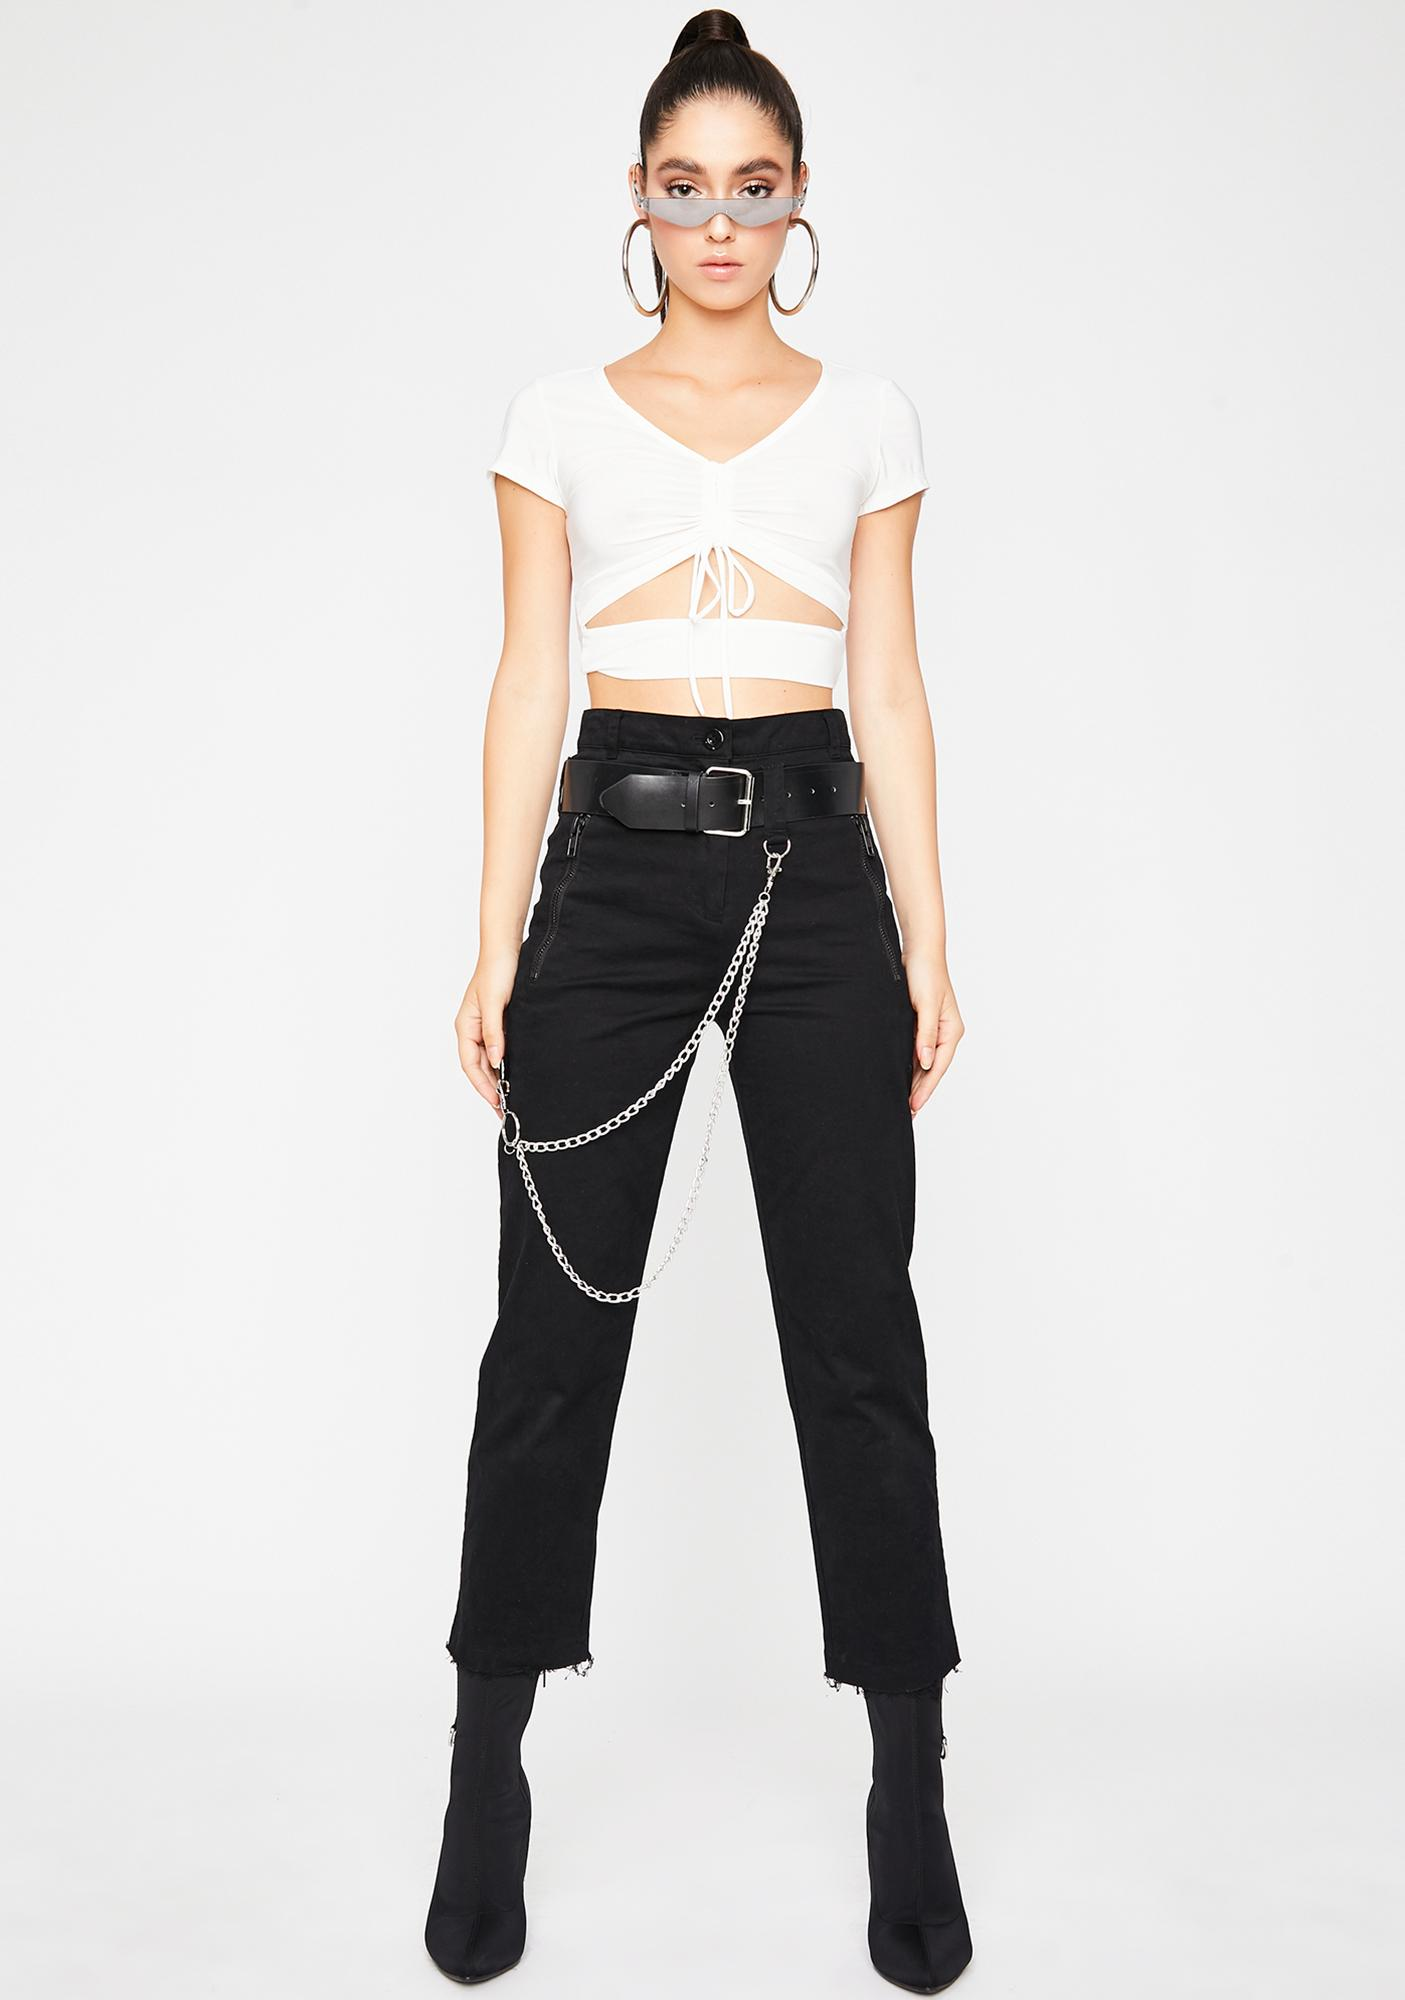 Babelike Behavior Crop Top